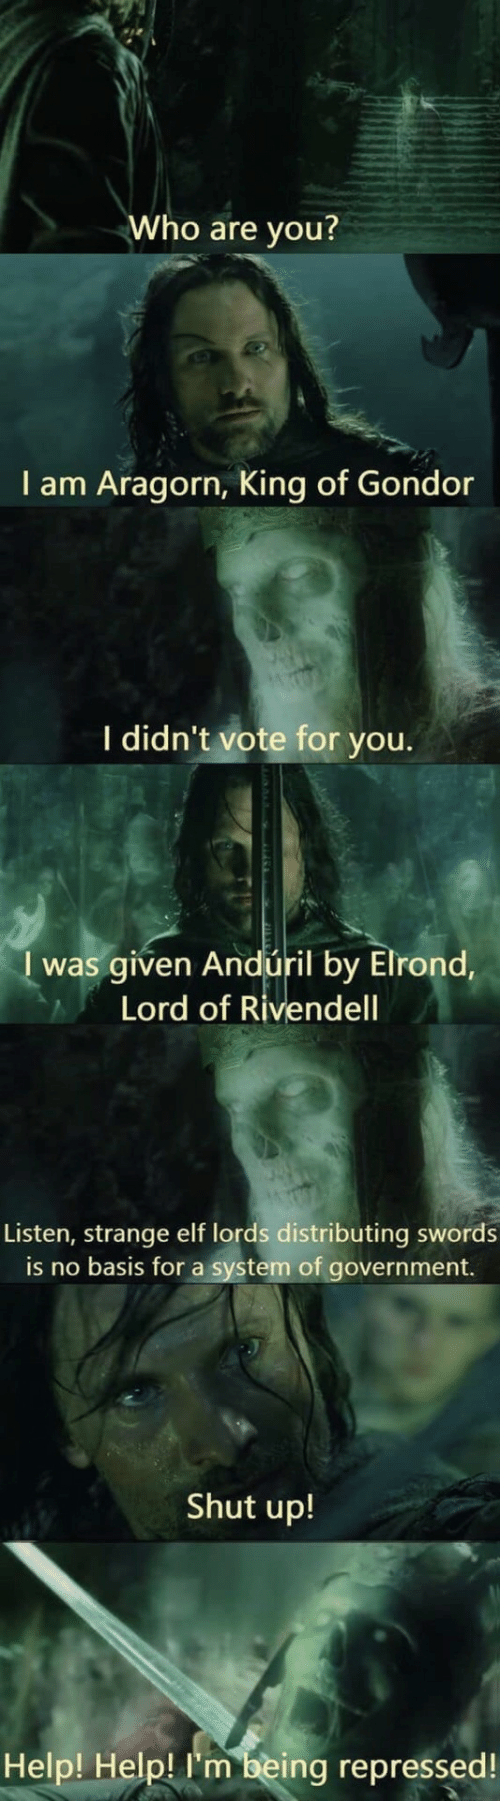 Vote For: Who are you?  I am Aragorn, King of Gondor  I didn't vote for you.  I was given Andúril by Elrond,  Lord of Rivendell  Listen, strange elf lords distributing swords  is no basis for a system of government.  Shut up!  Help! Help! I'm being repressed!